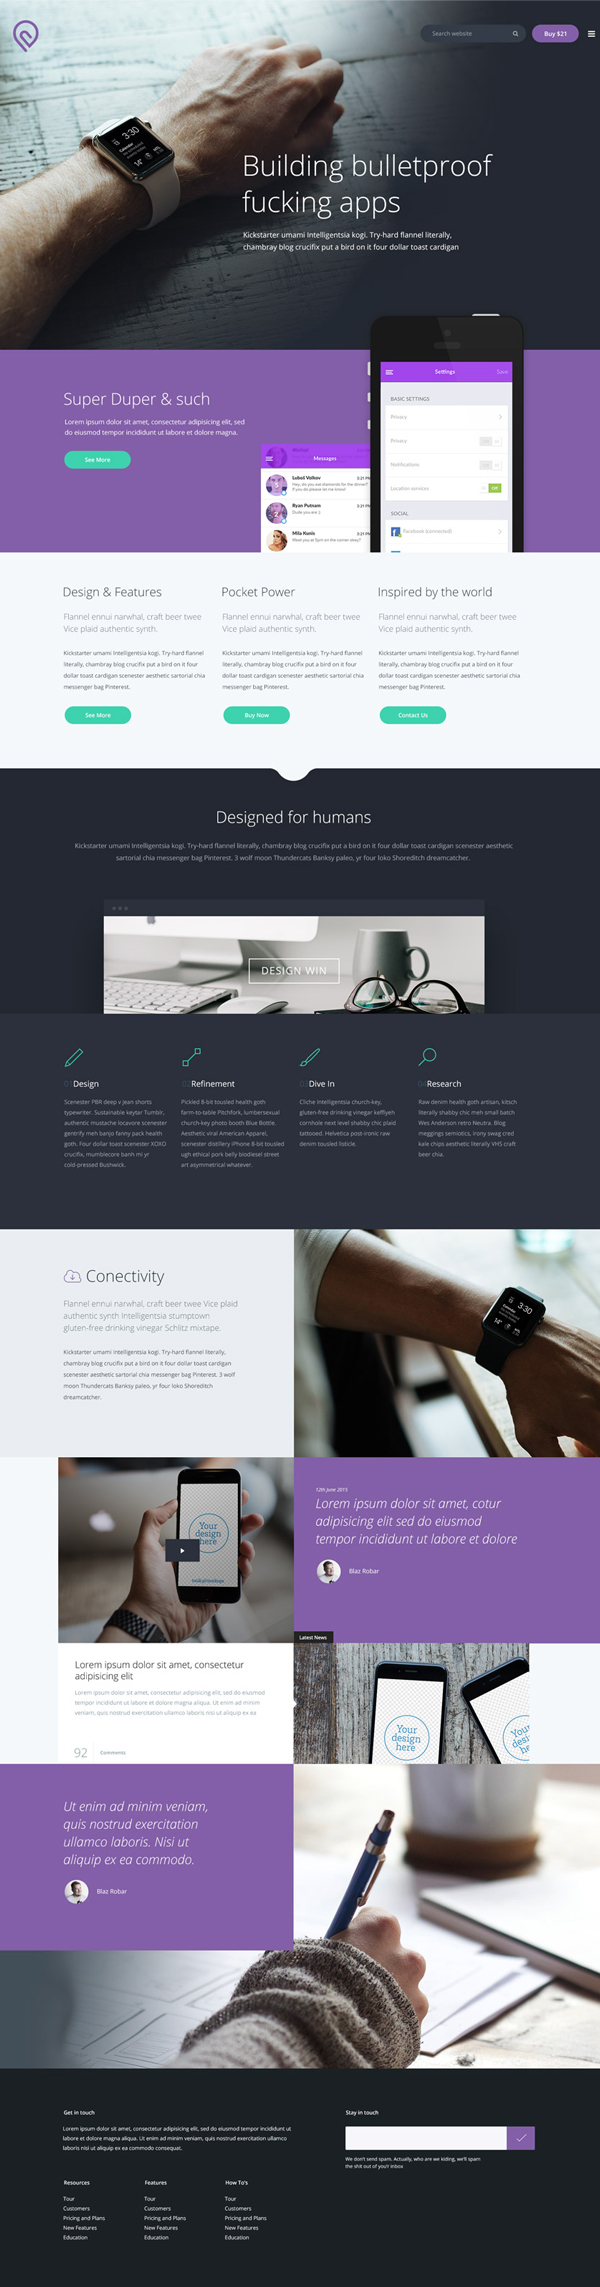 12 new free psd website templates freebies graphic - Home design app used on love it or list it ...